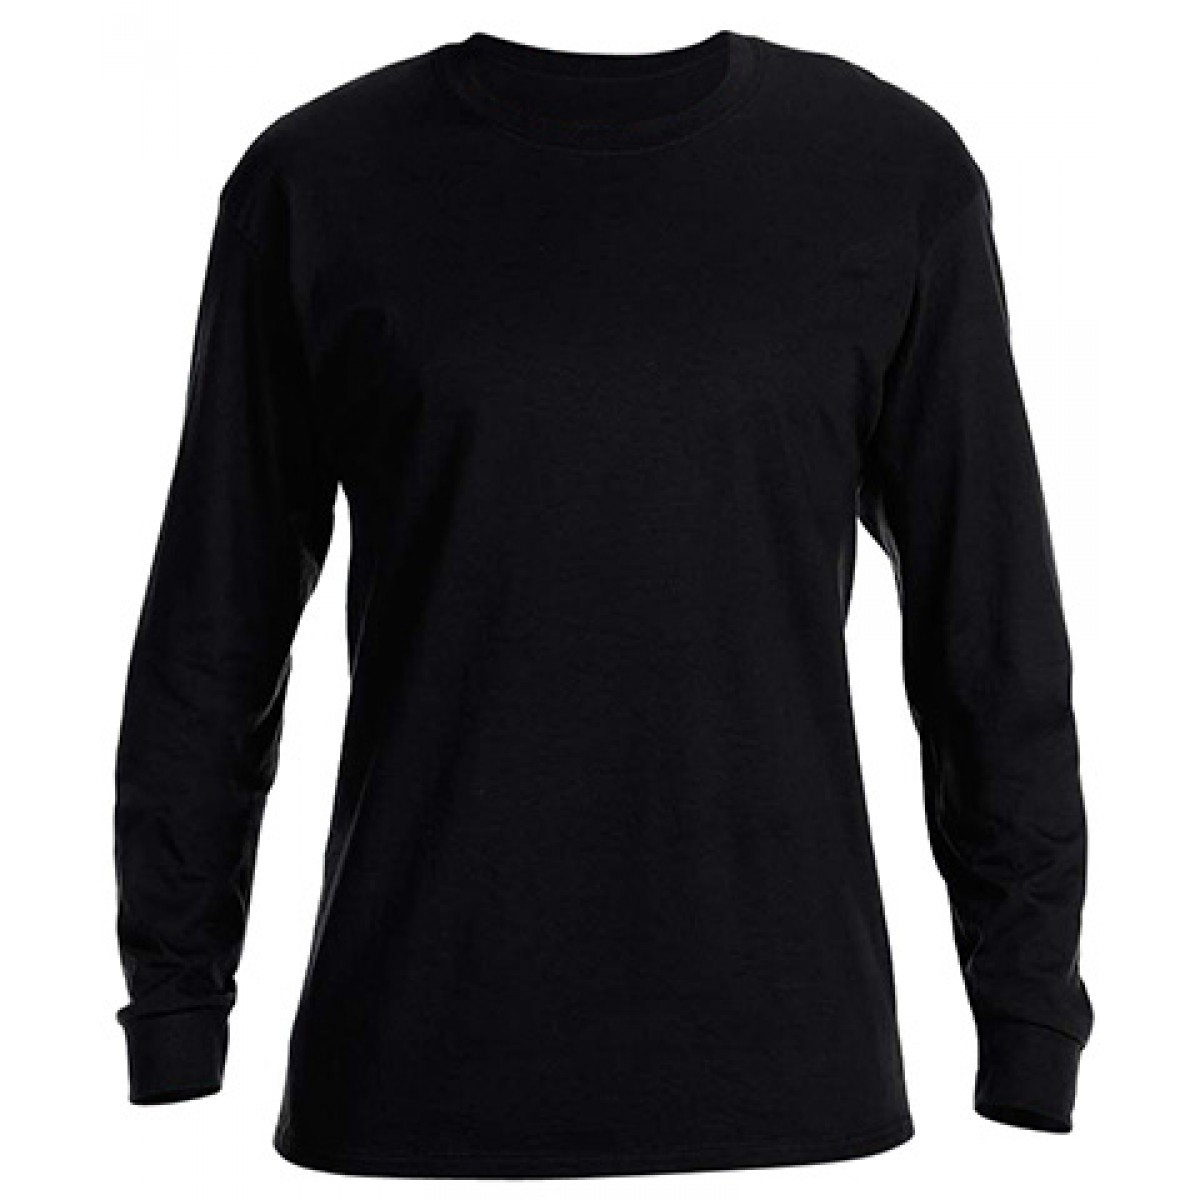 Basic Long Sleeve Crew Neck -Black-YS